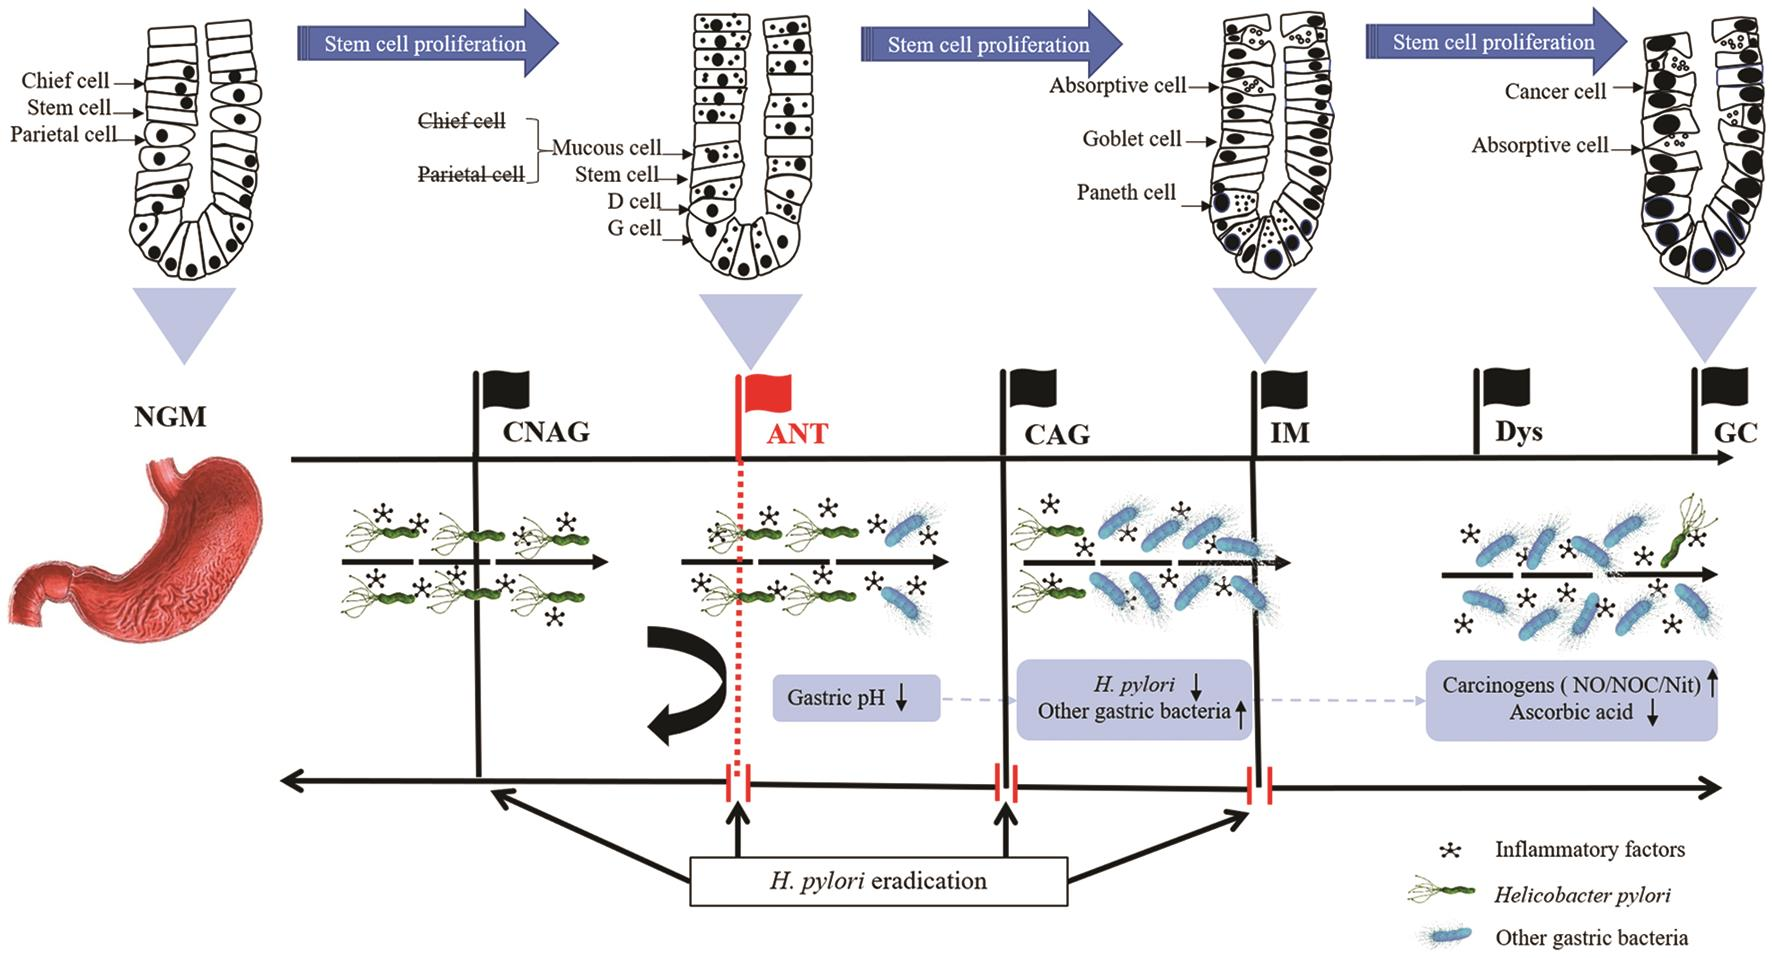 Proposed role of <italic>Helicobacter pylori</italic>-induced antralization in gastric carcinogenesis.